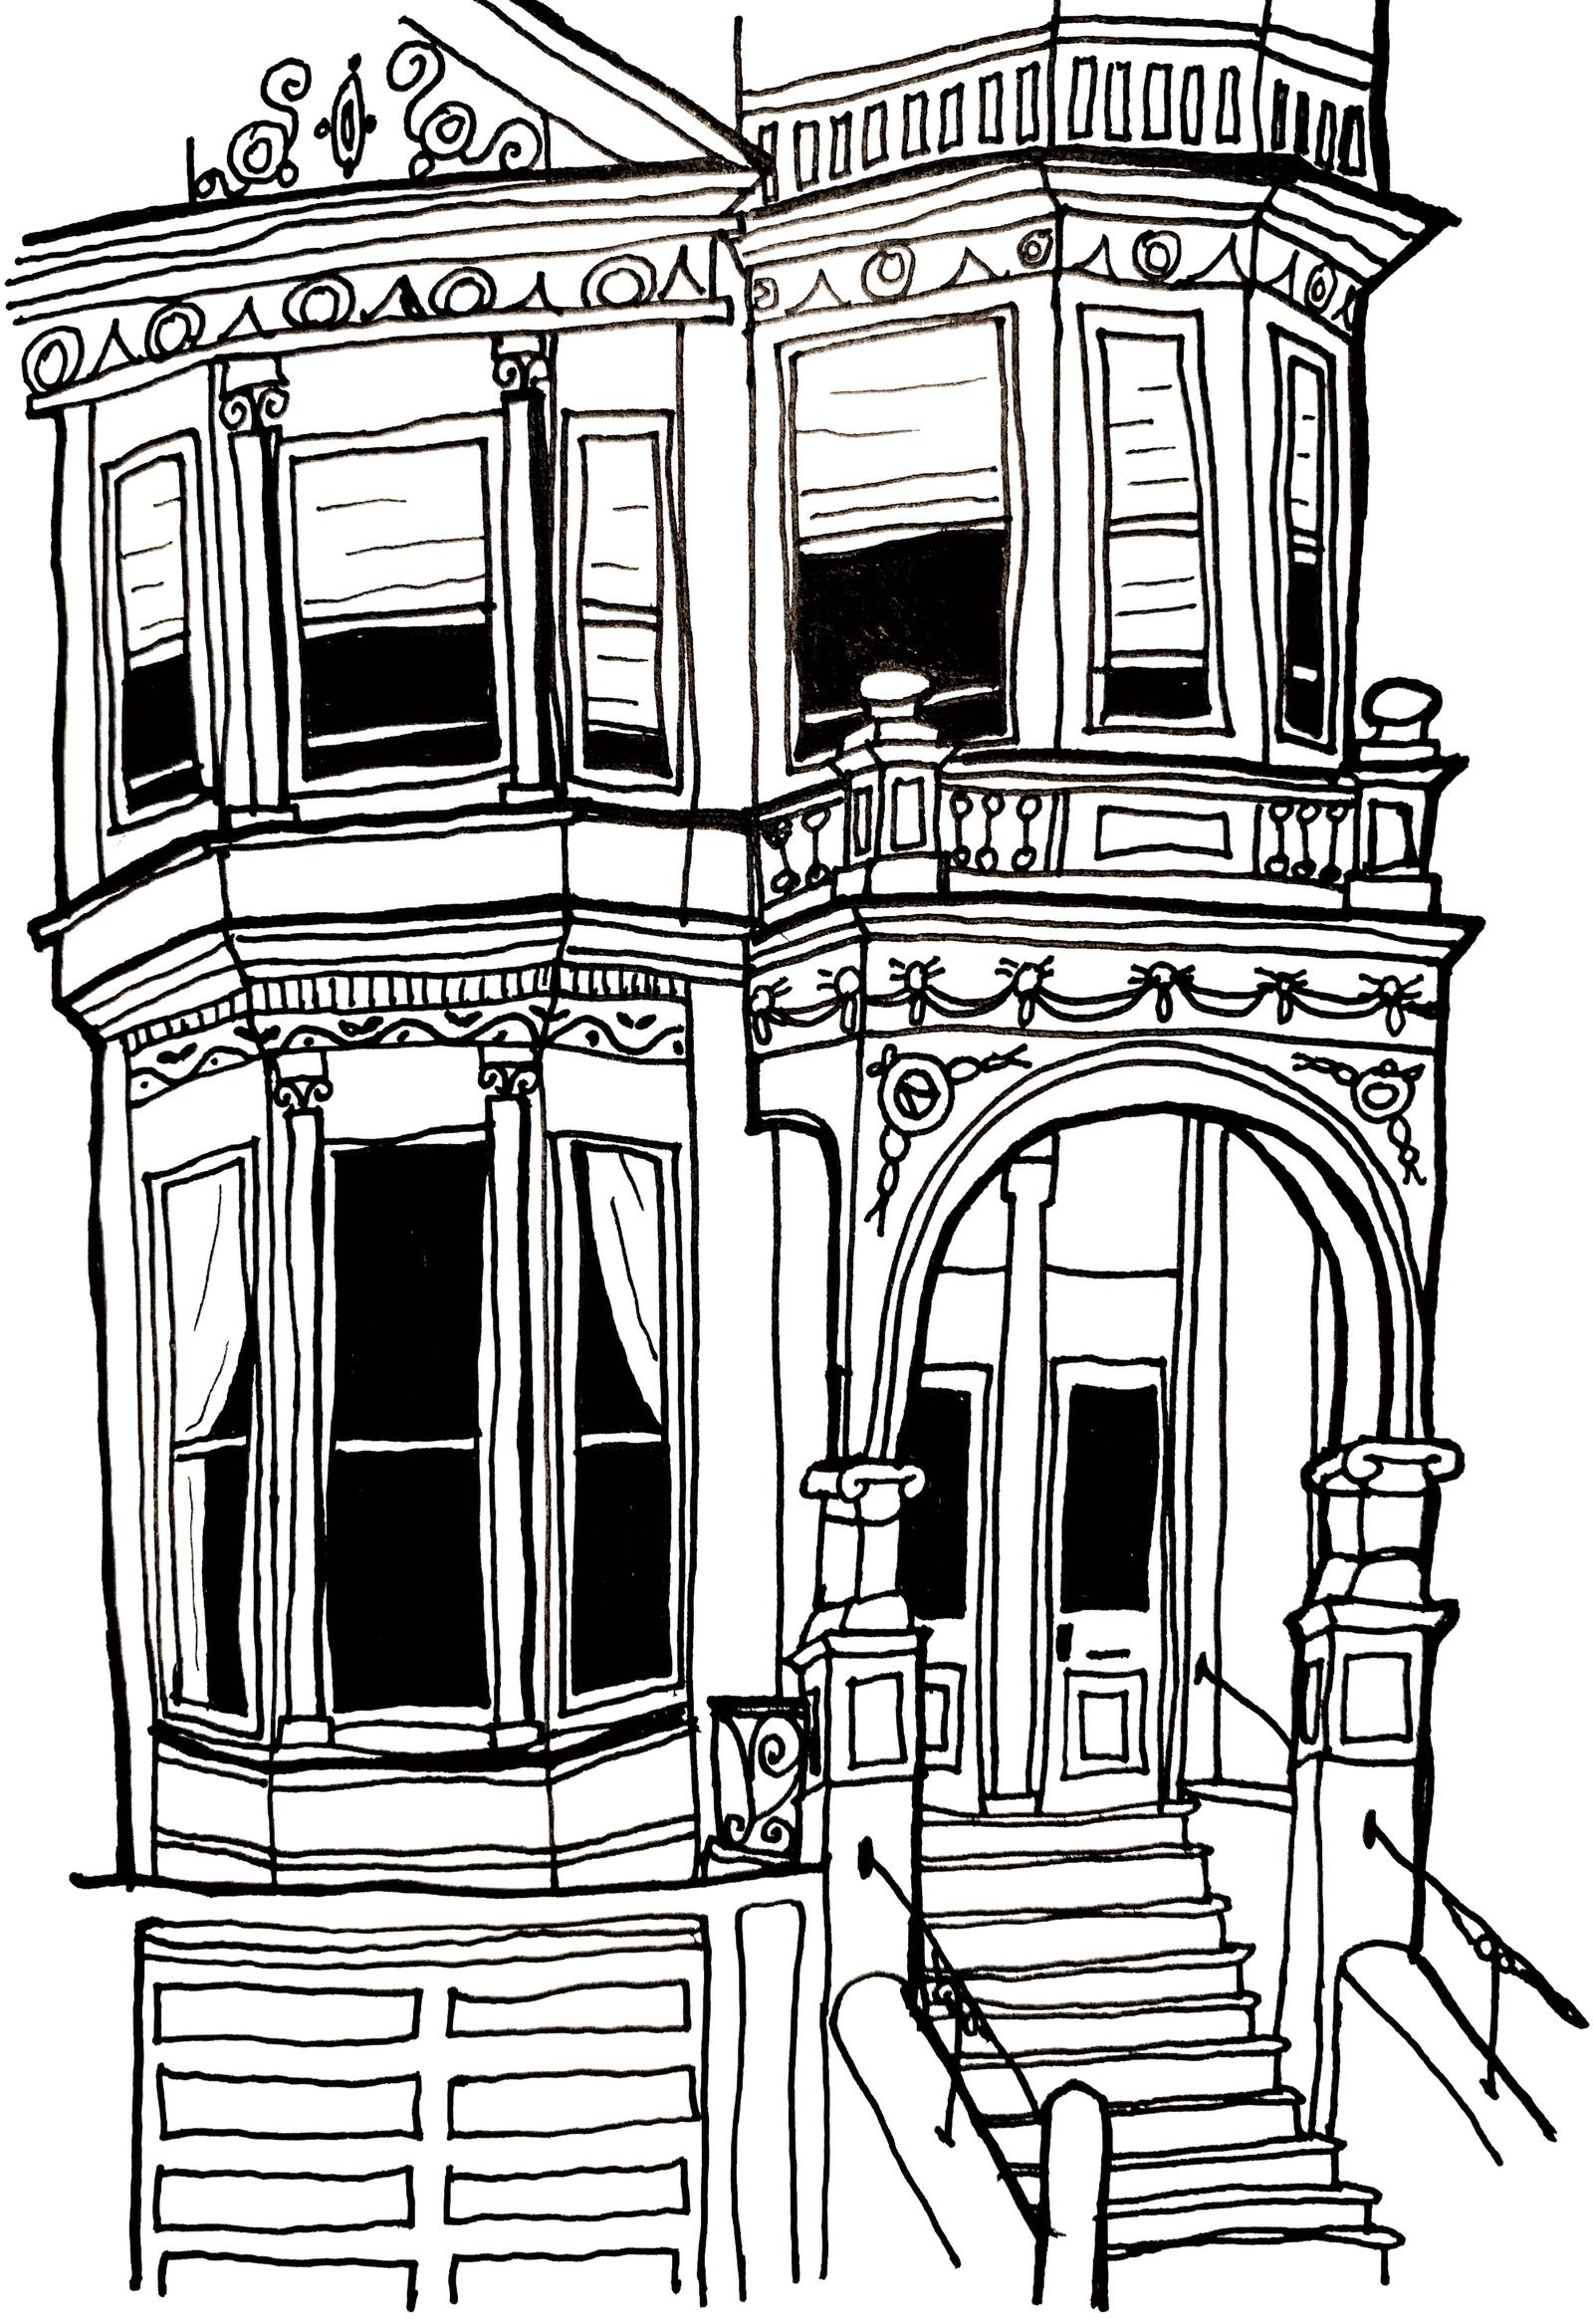 Townhouse Sketch